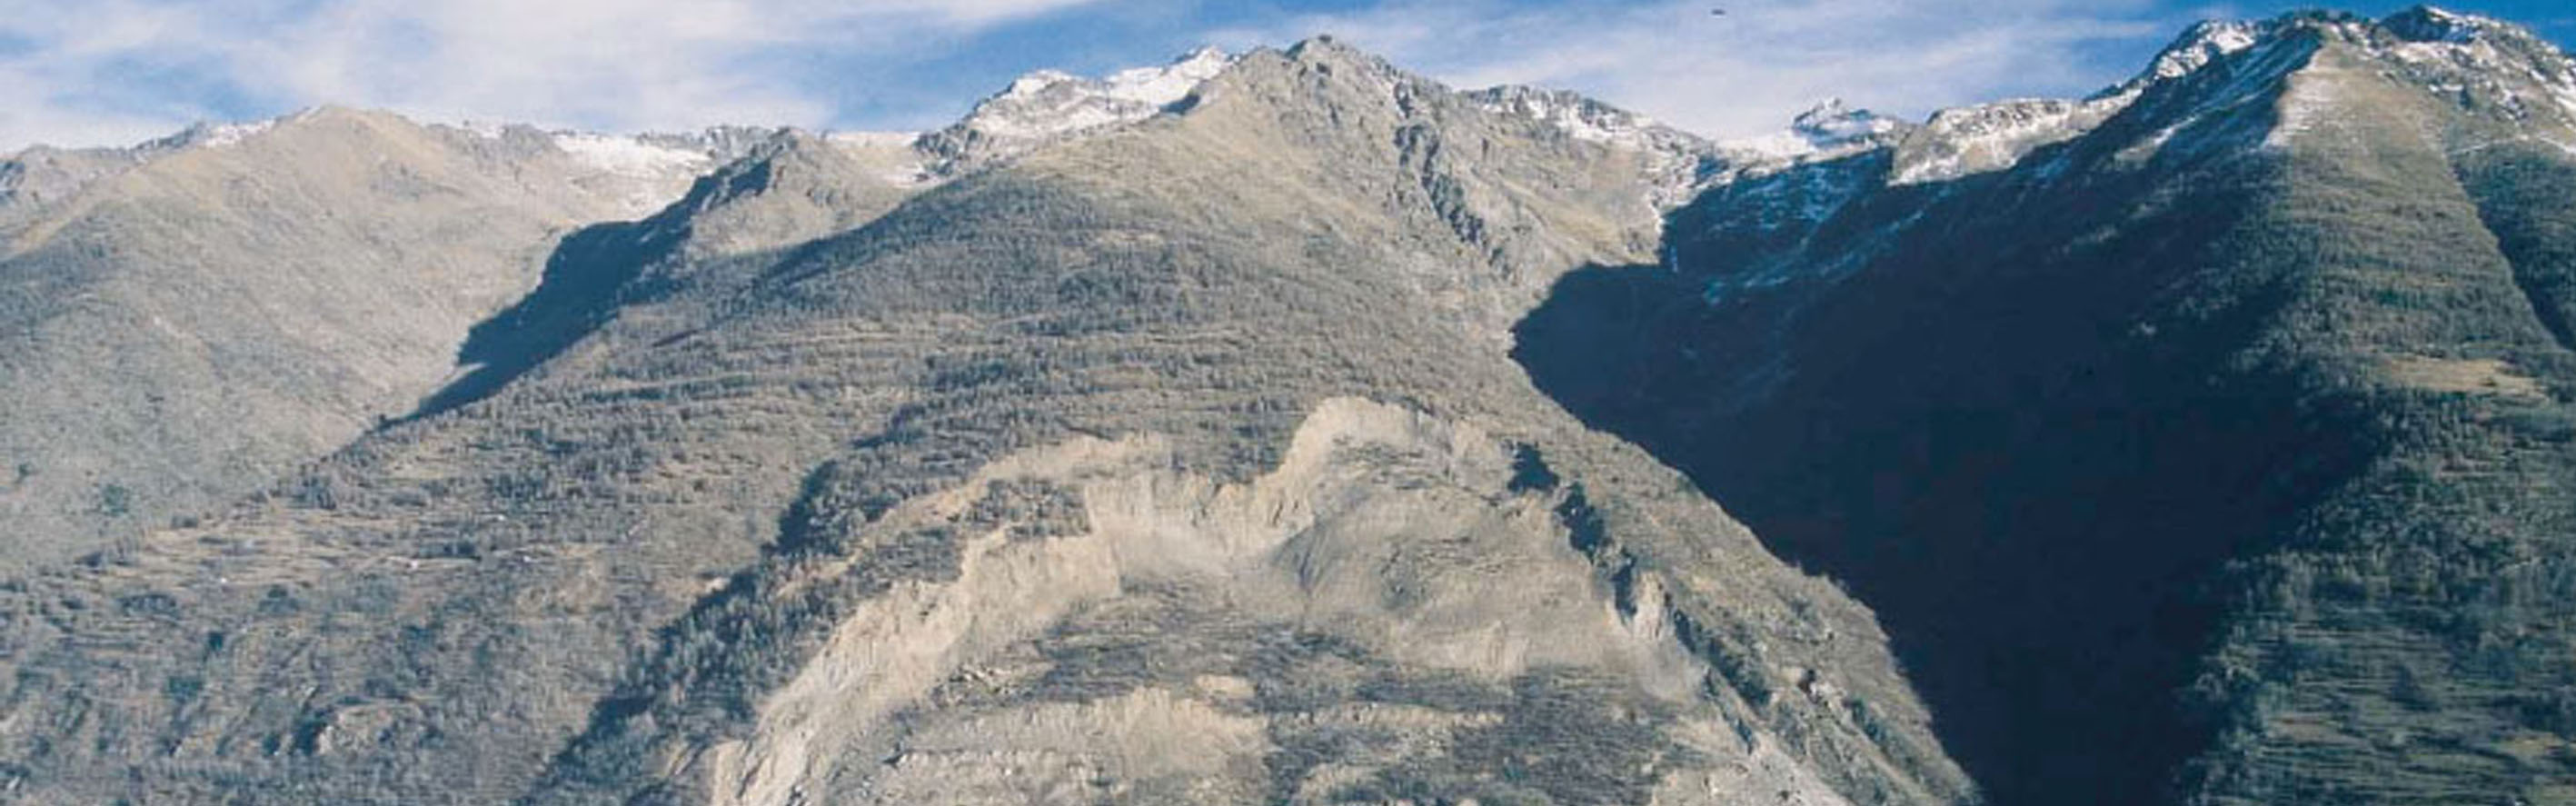 La Clapîère landslide: view of the unstable slope in 2003